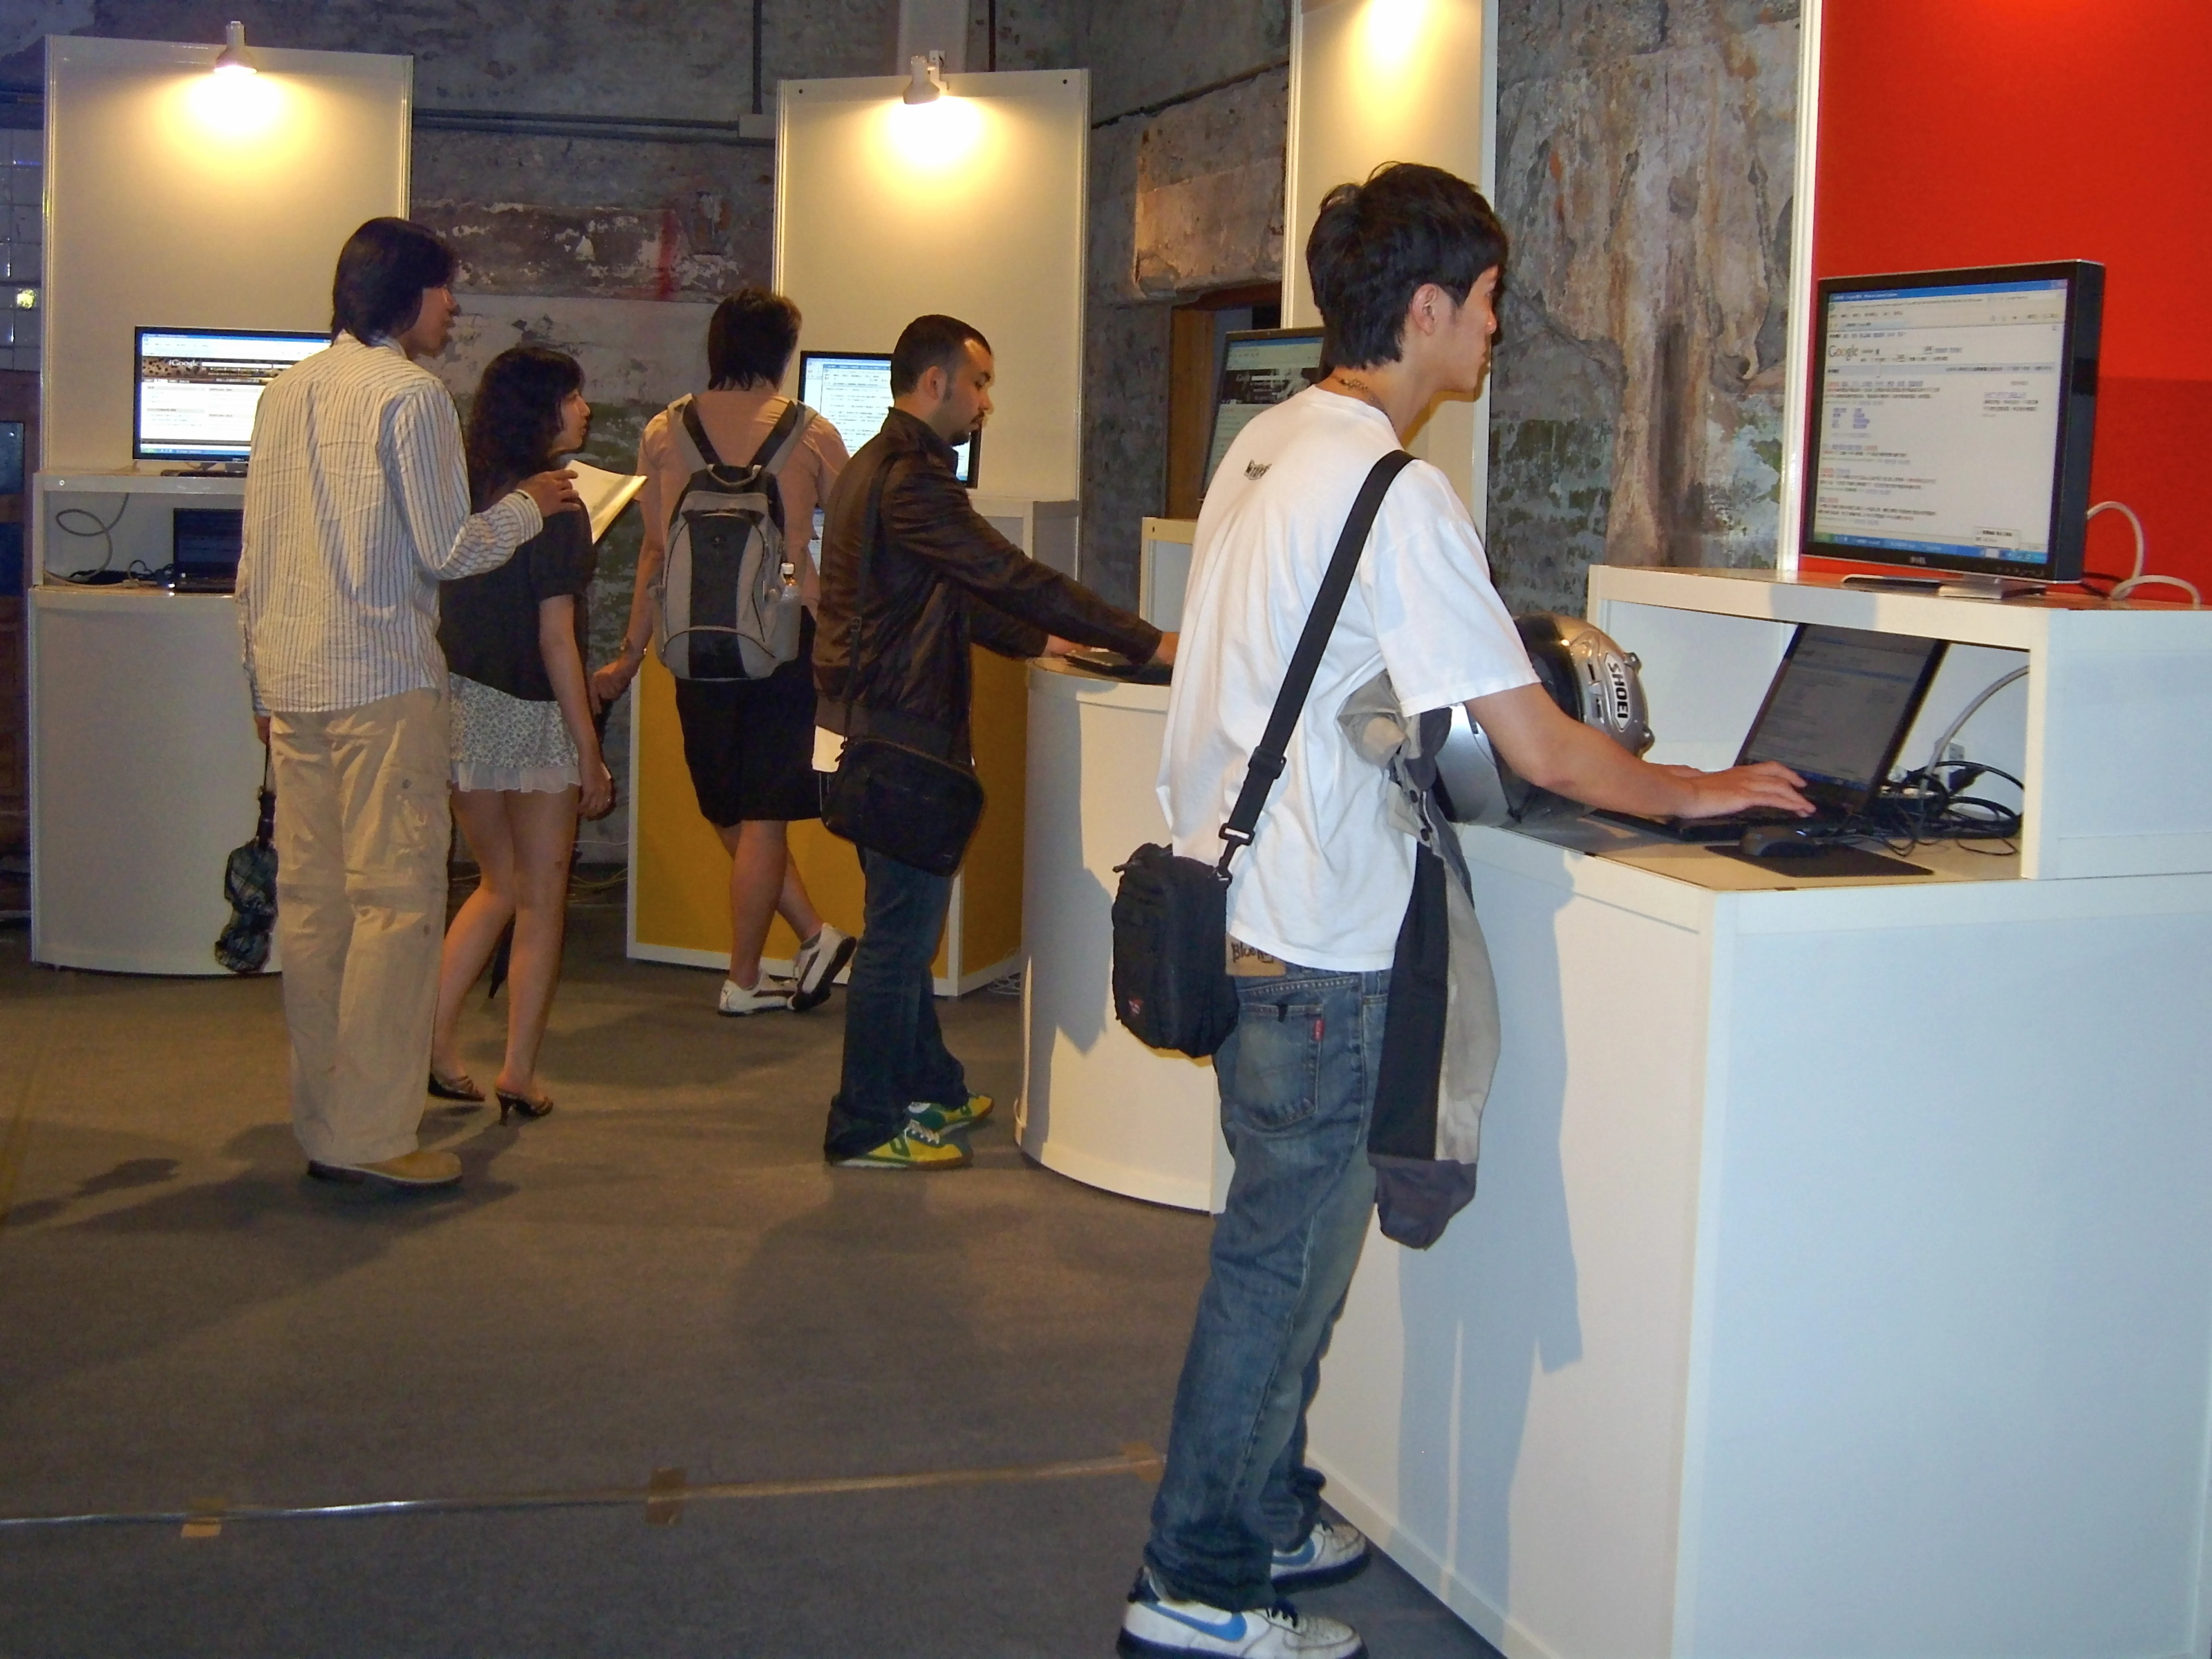 Exhibition Booth Wiki : Wiki exhibition upcscavenger